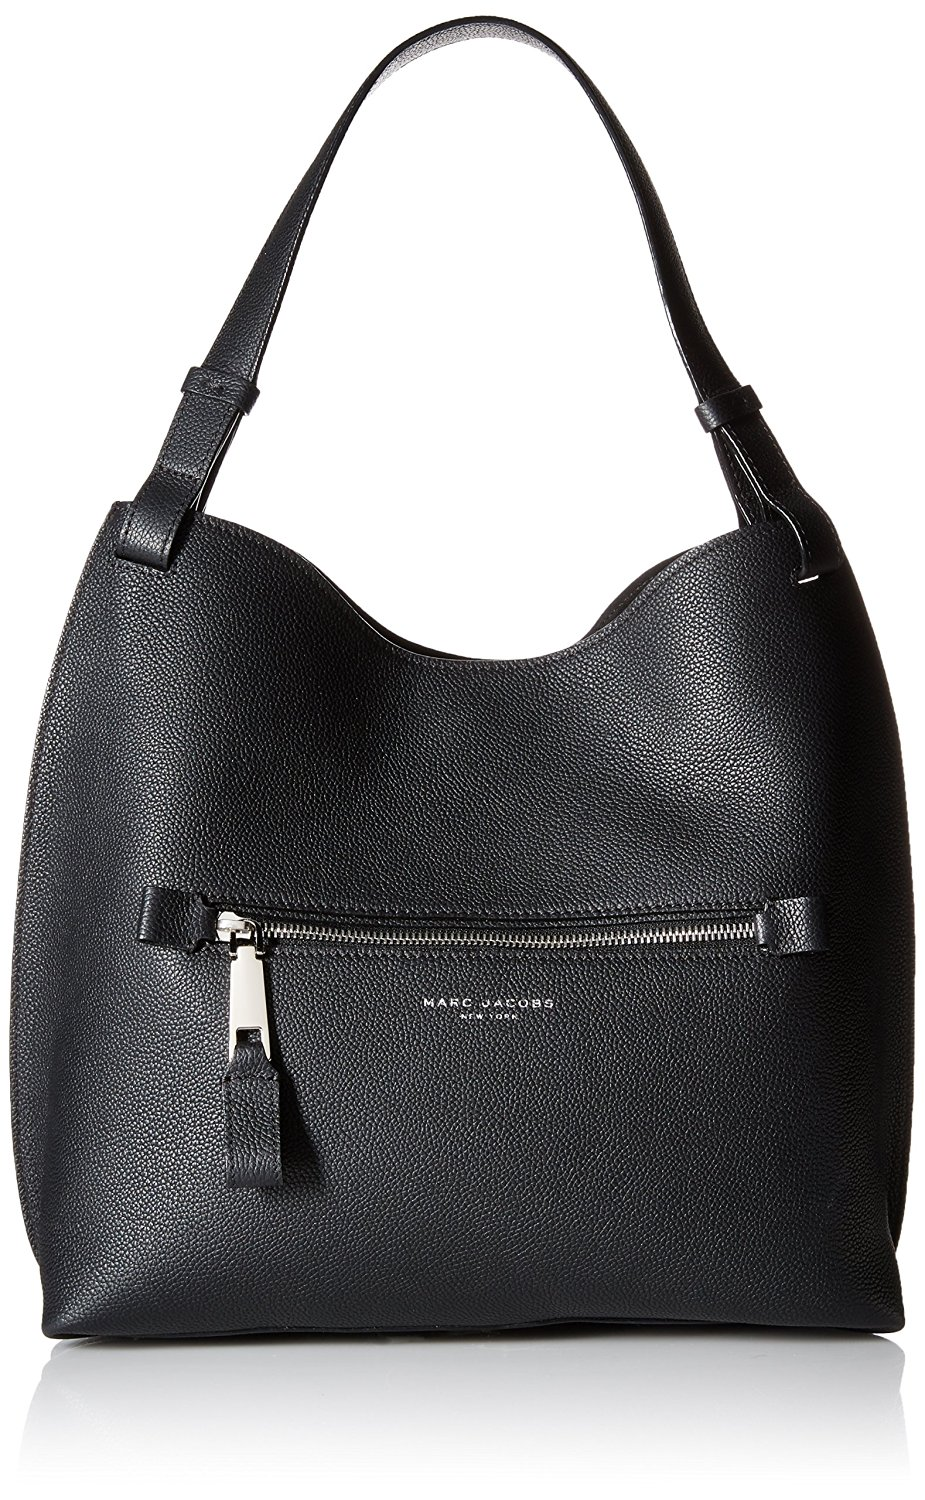 8950991a6c9e Marc Jacobs Waverly Leather Small Hobo Bag in Black 889732549663